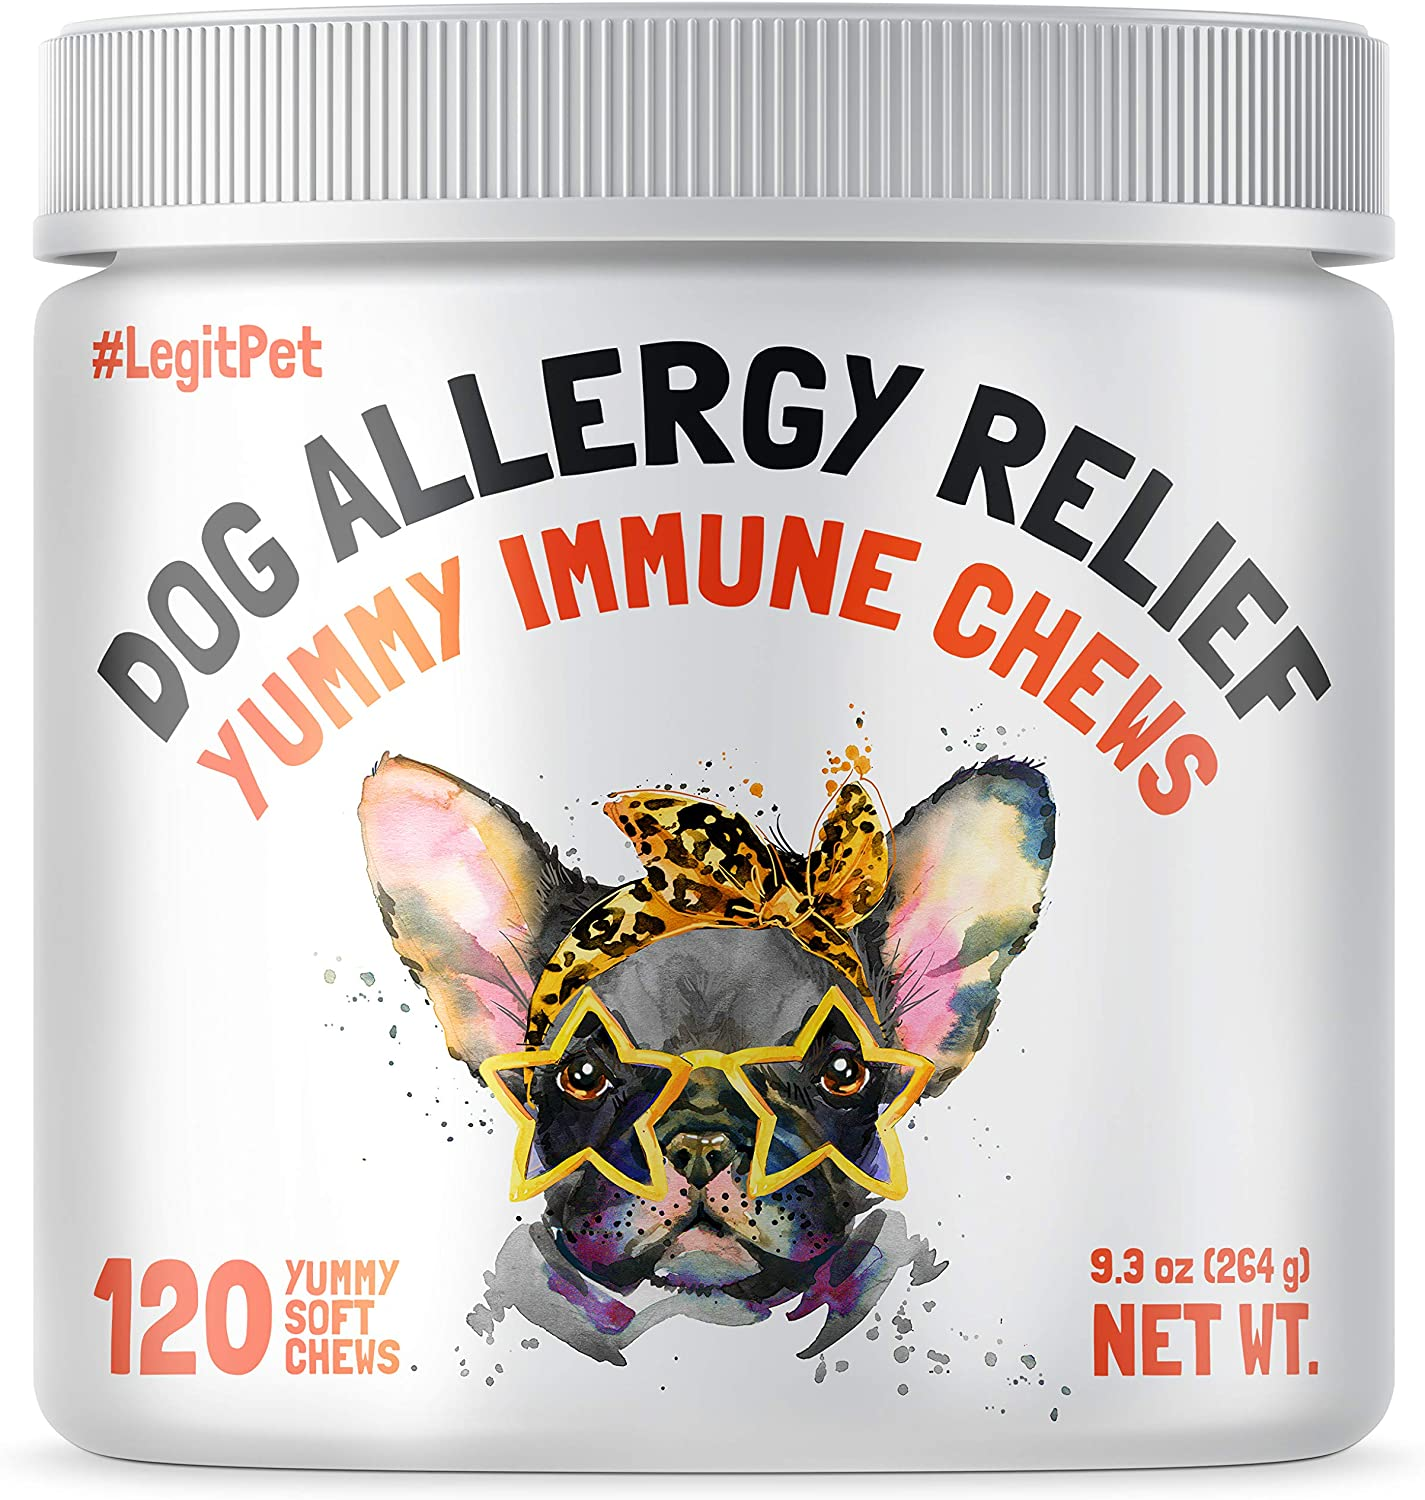 LEGITPET Allergy Relief Chews for Dogs & Immune Support with Kelp, Colostrum & Bee Pollen - for Seasonal Allergies + Anti Itch, Skin Hot Spots Soft Treats